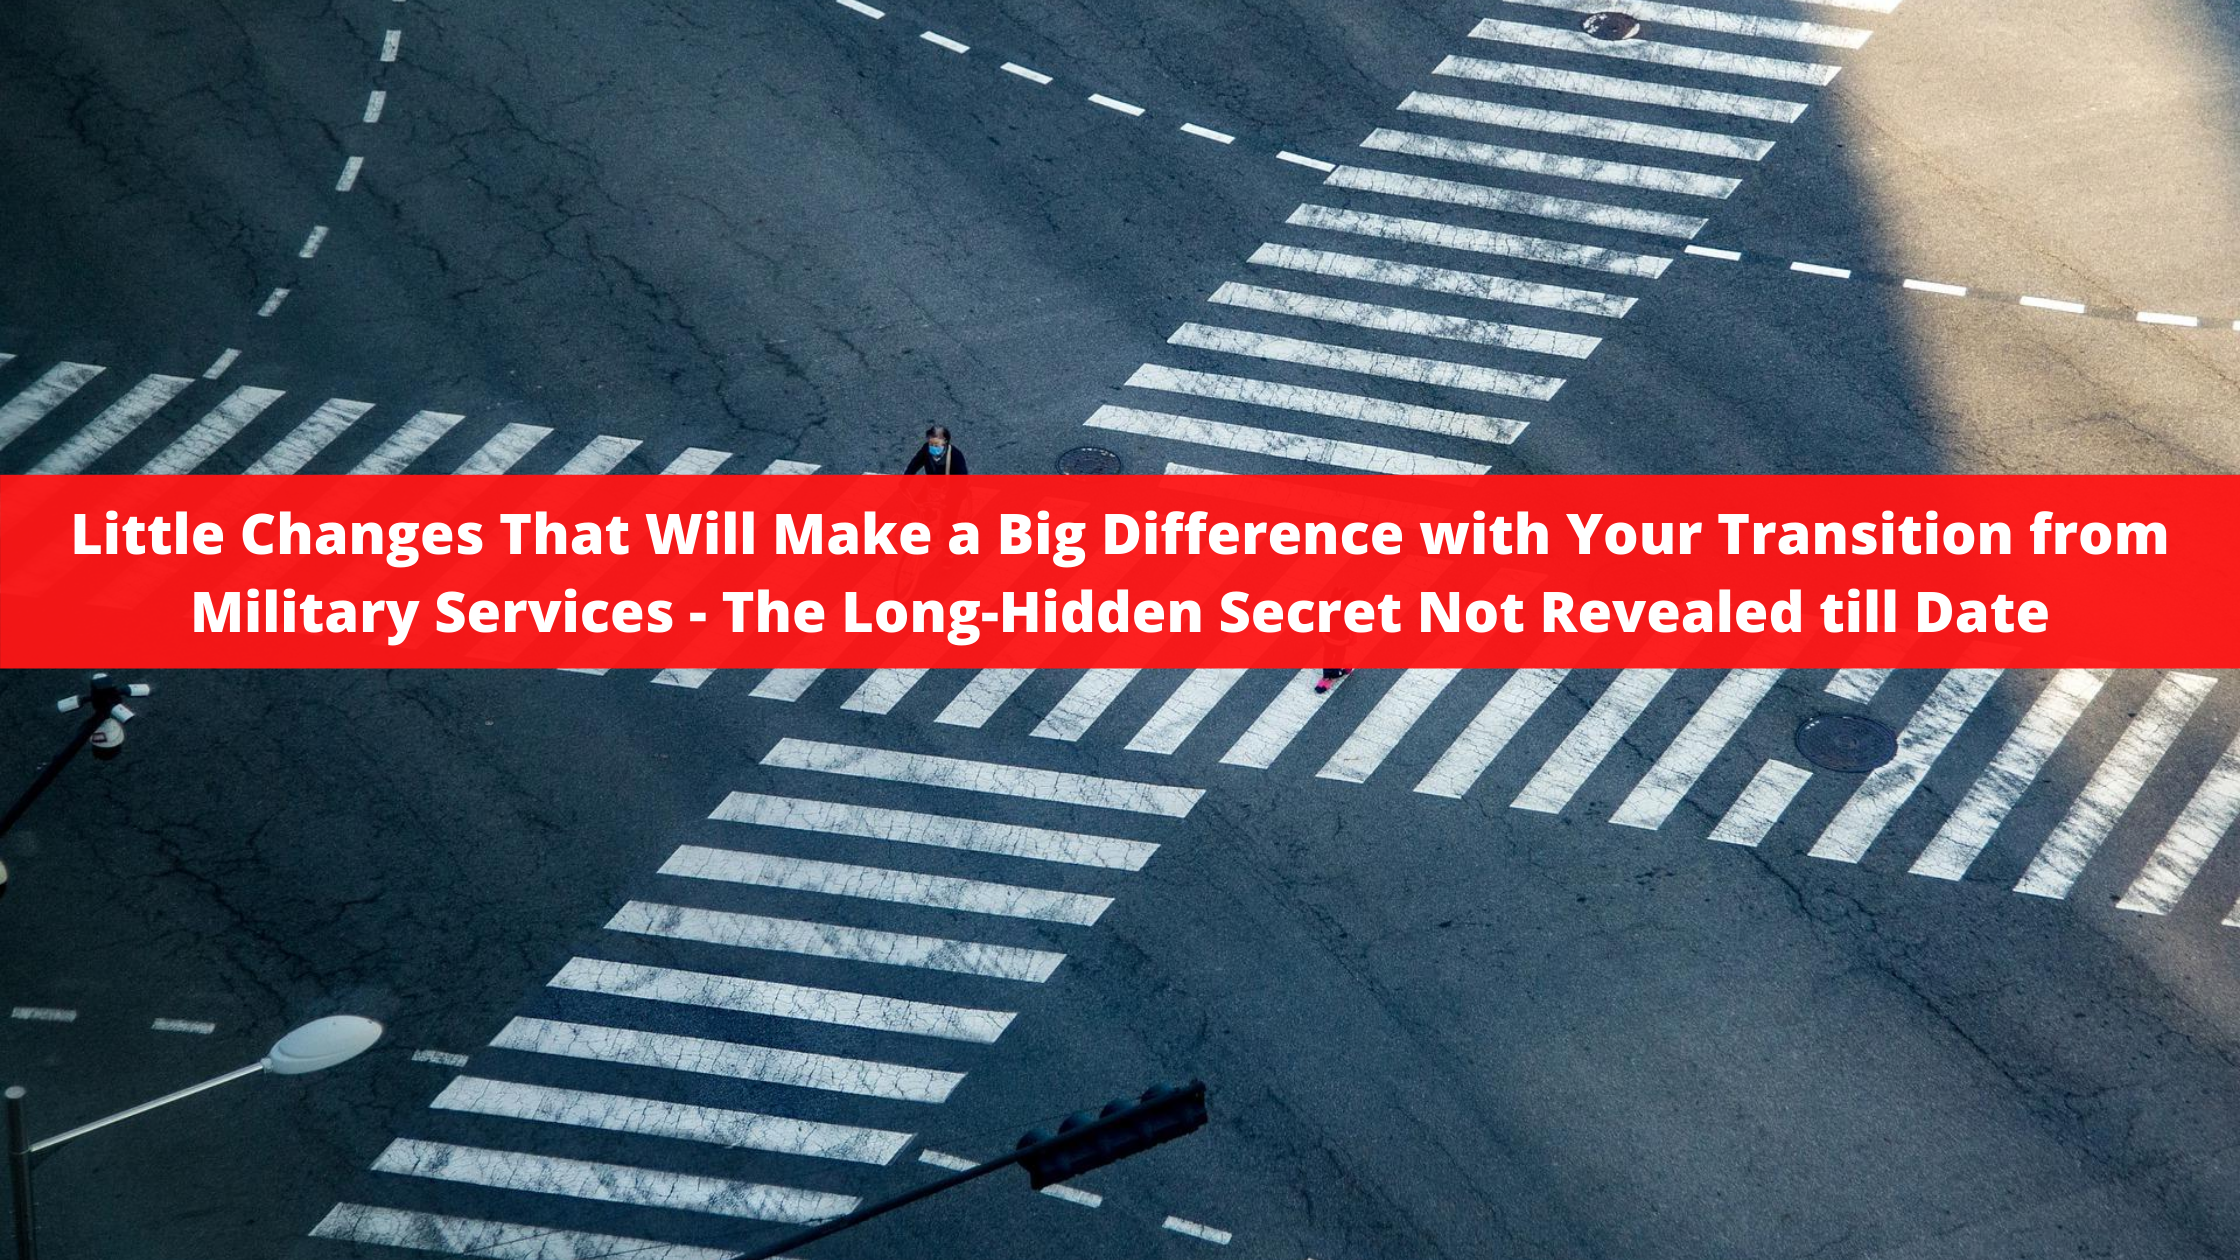 Little Changes That Will Make a Big Difference with Your Transition from Military Services - The Long-Hidden Secret Not Revealed till Date